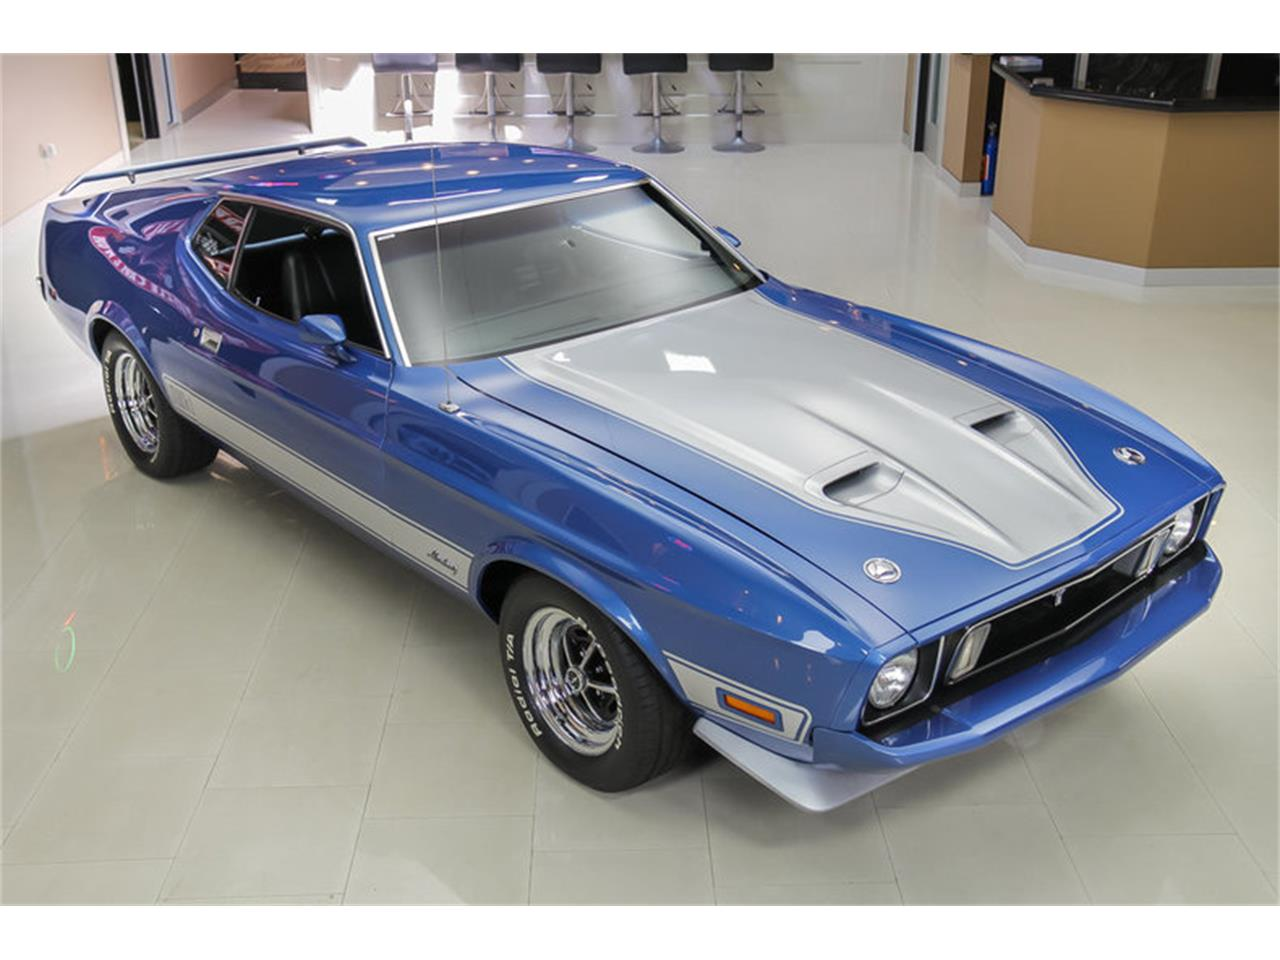 Large Picture of 1973 Ford Mustang Mach 1 Q Code - $34,900.00 Offered by Vanguard Motor Sales - JDX1